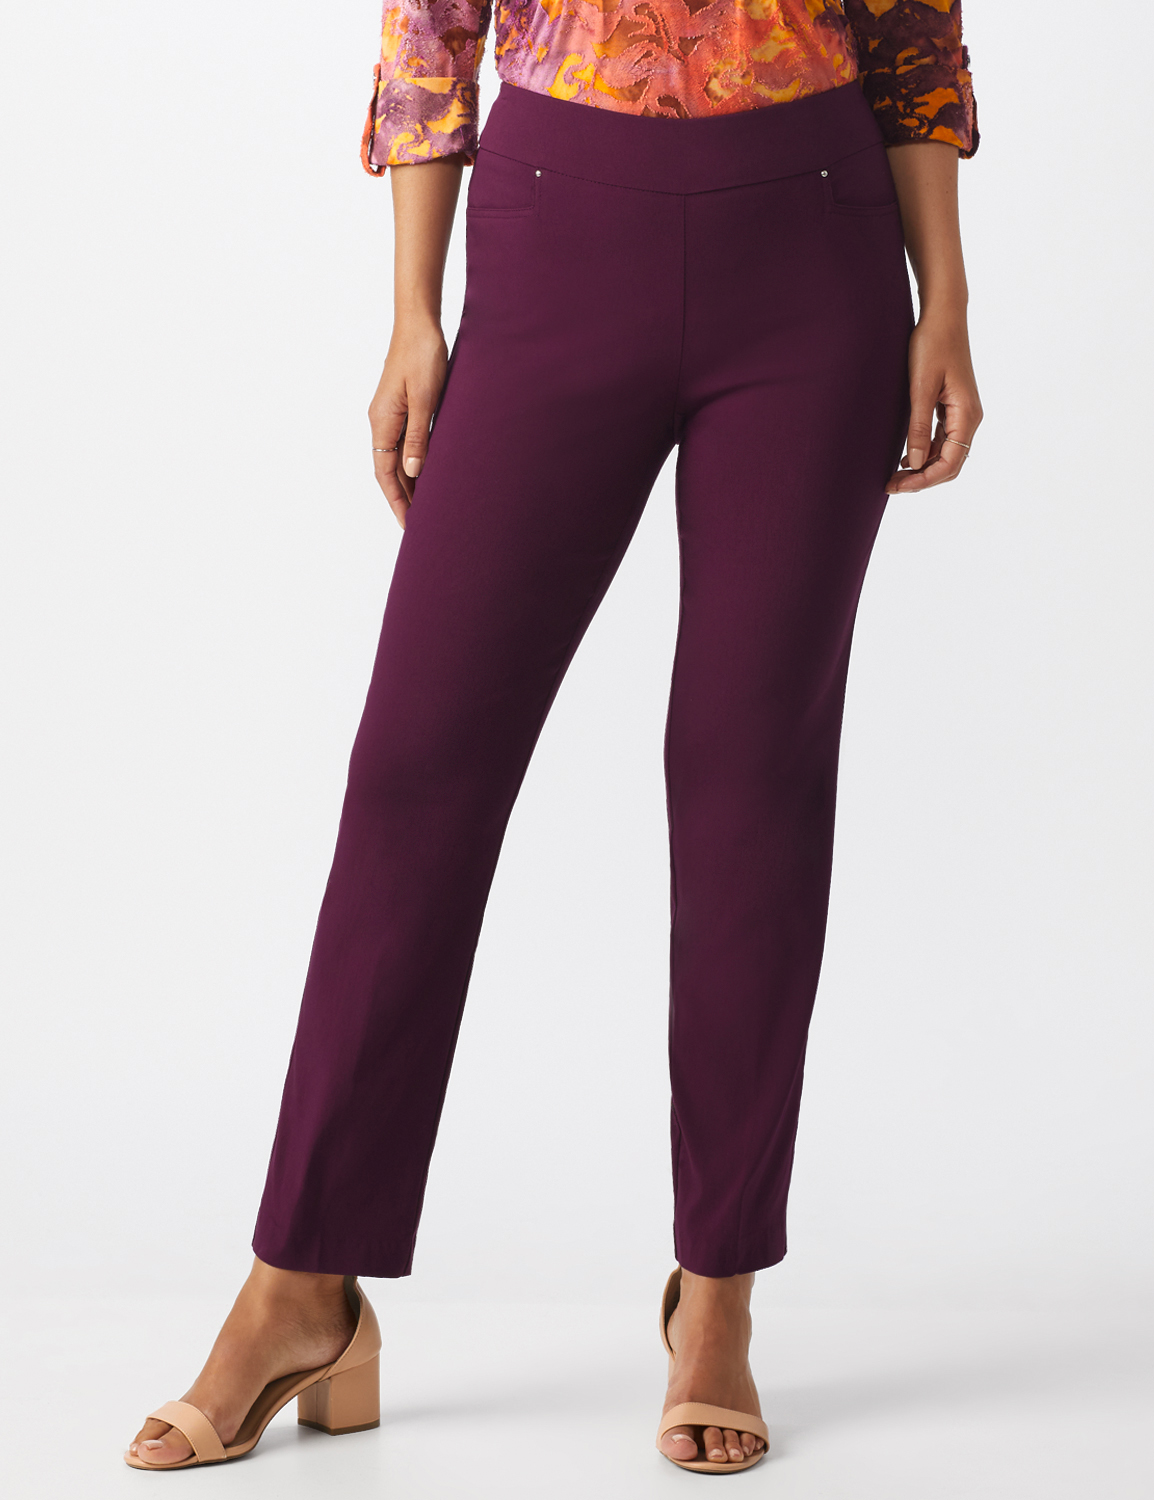 Superstretch Pull On Pants with Rivet Trim L Pockets - Plum - Front